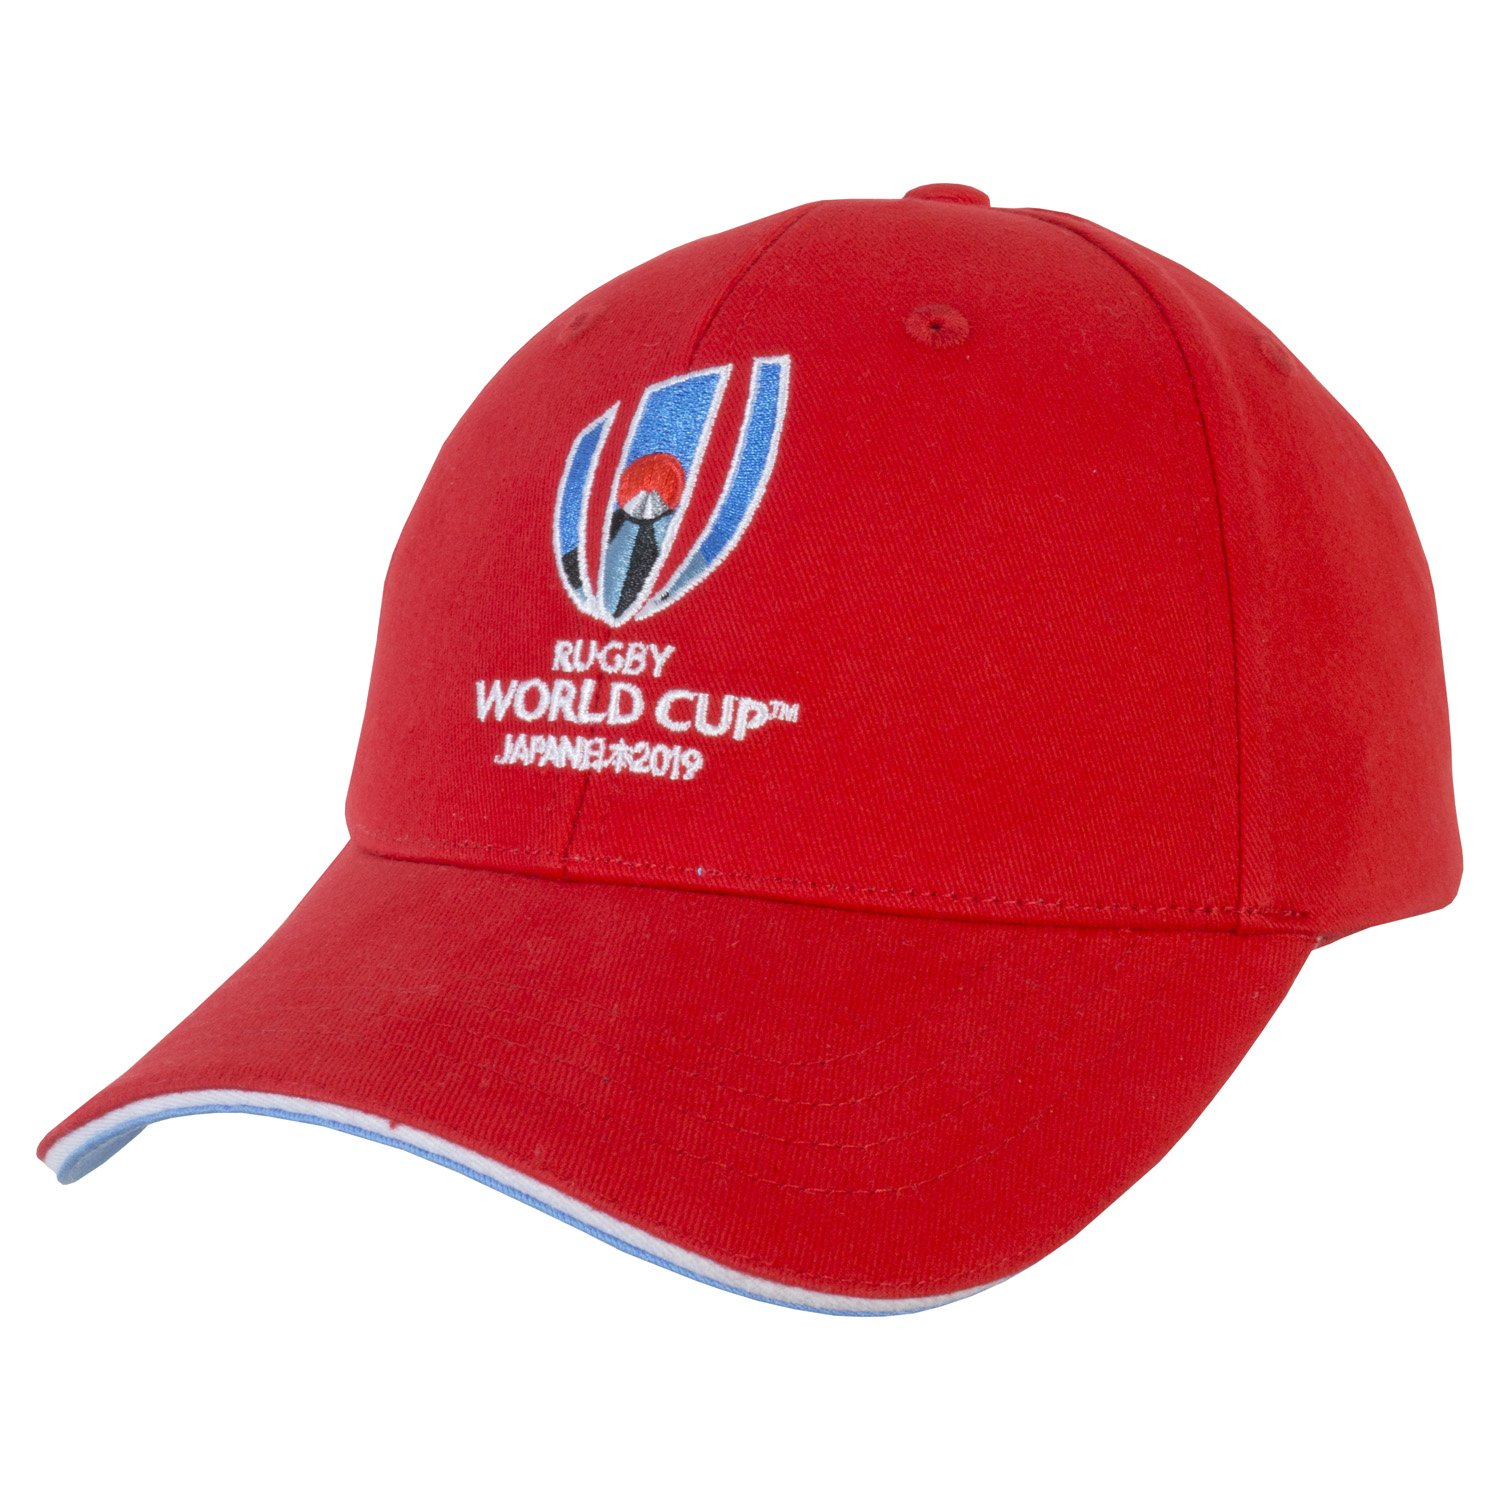 Rugby World Cup 2019 Red Logo Cap